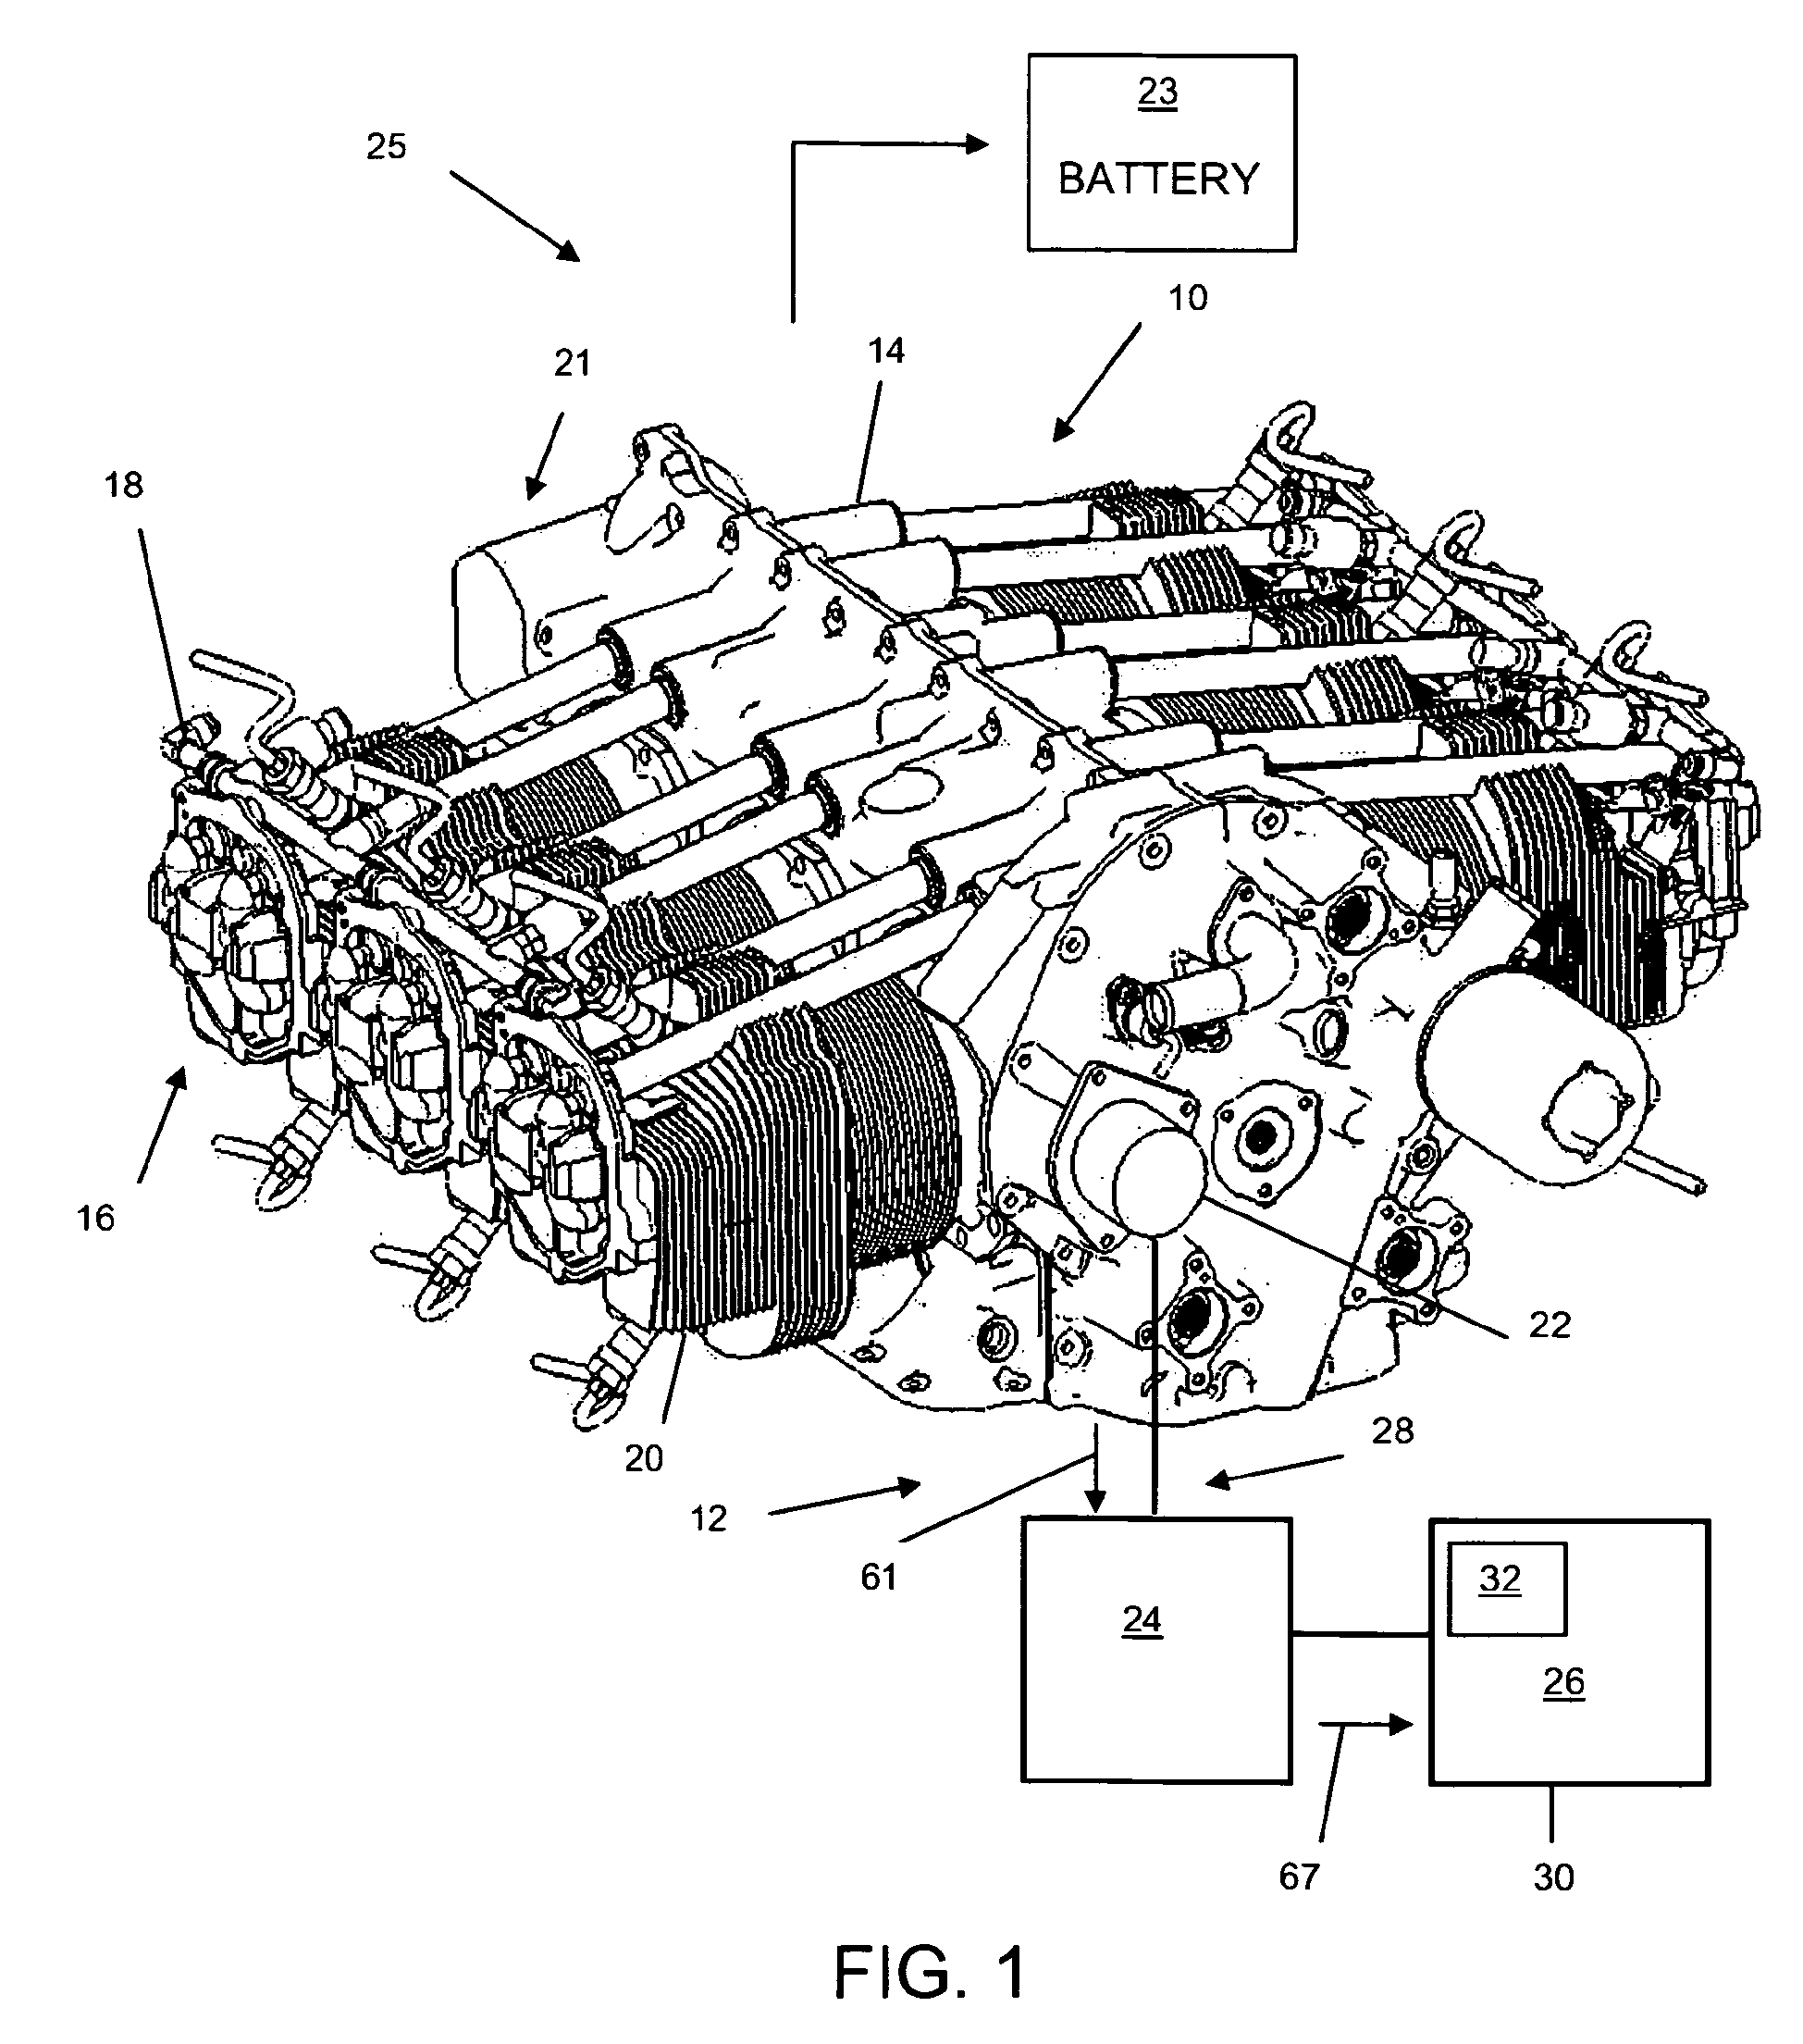 Patente EP2185415B1 Power source for an aircraft engine – Lycoming Aircraft Engine Diagram